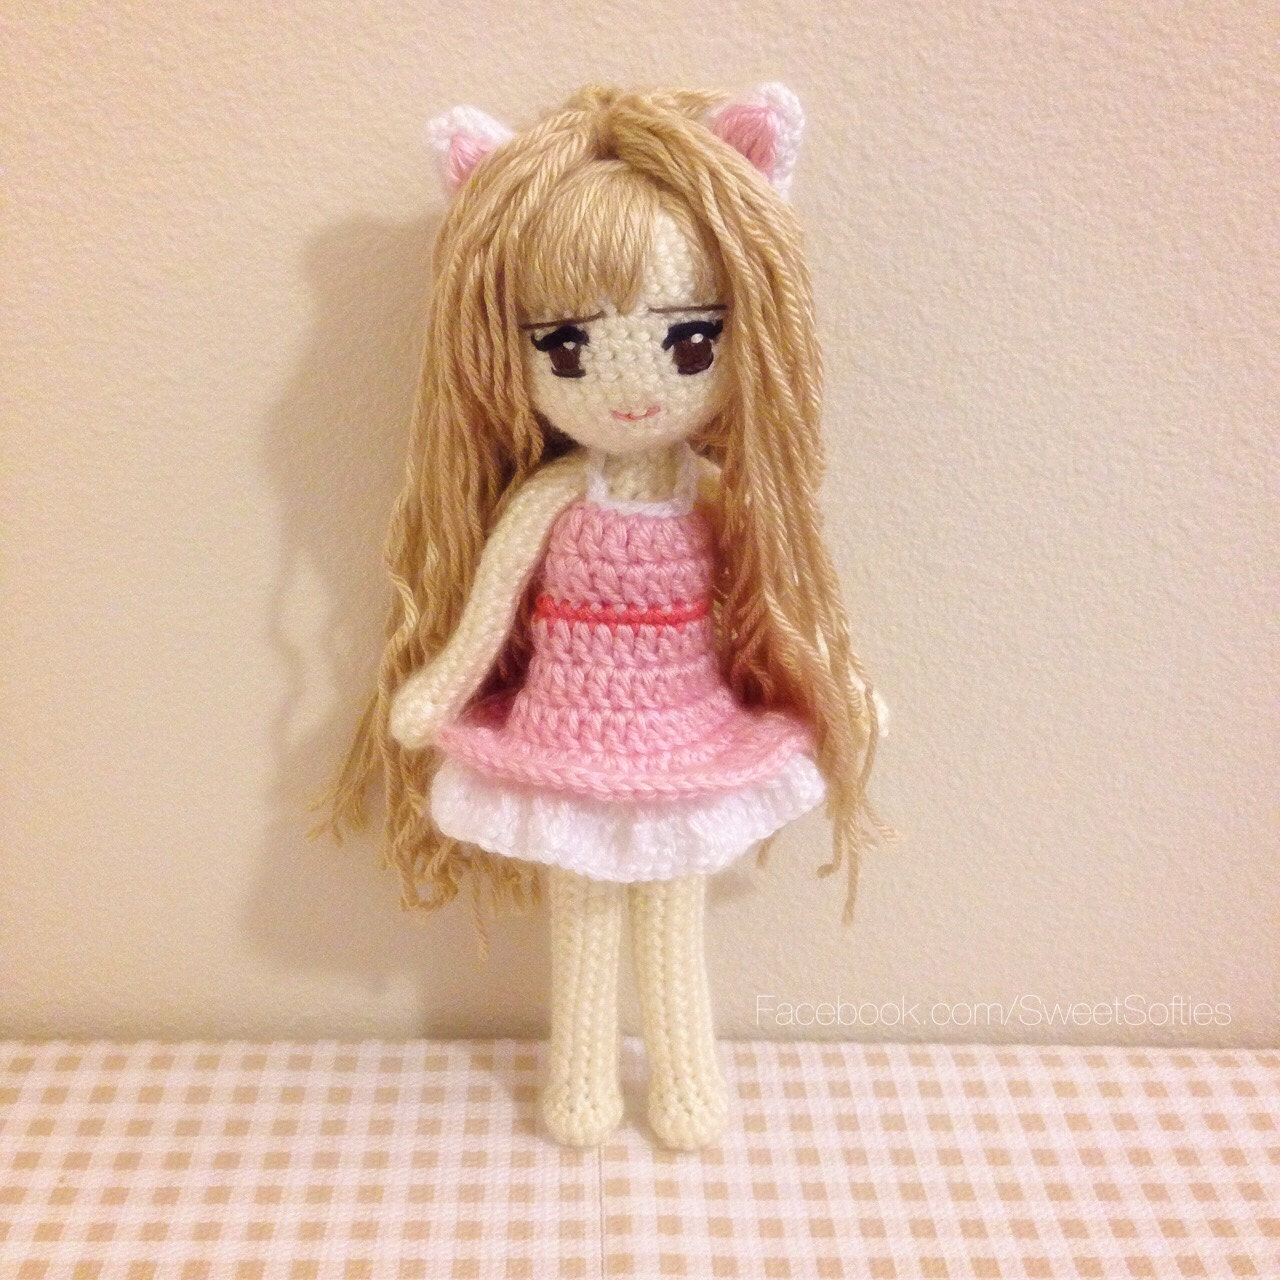 Crochet Pattern Human Doll : Amigurumi Crochet Doll Pattern Anime Kiki the Kitty Cat by ...